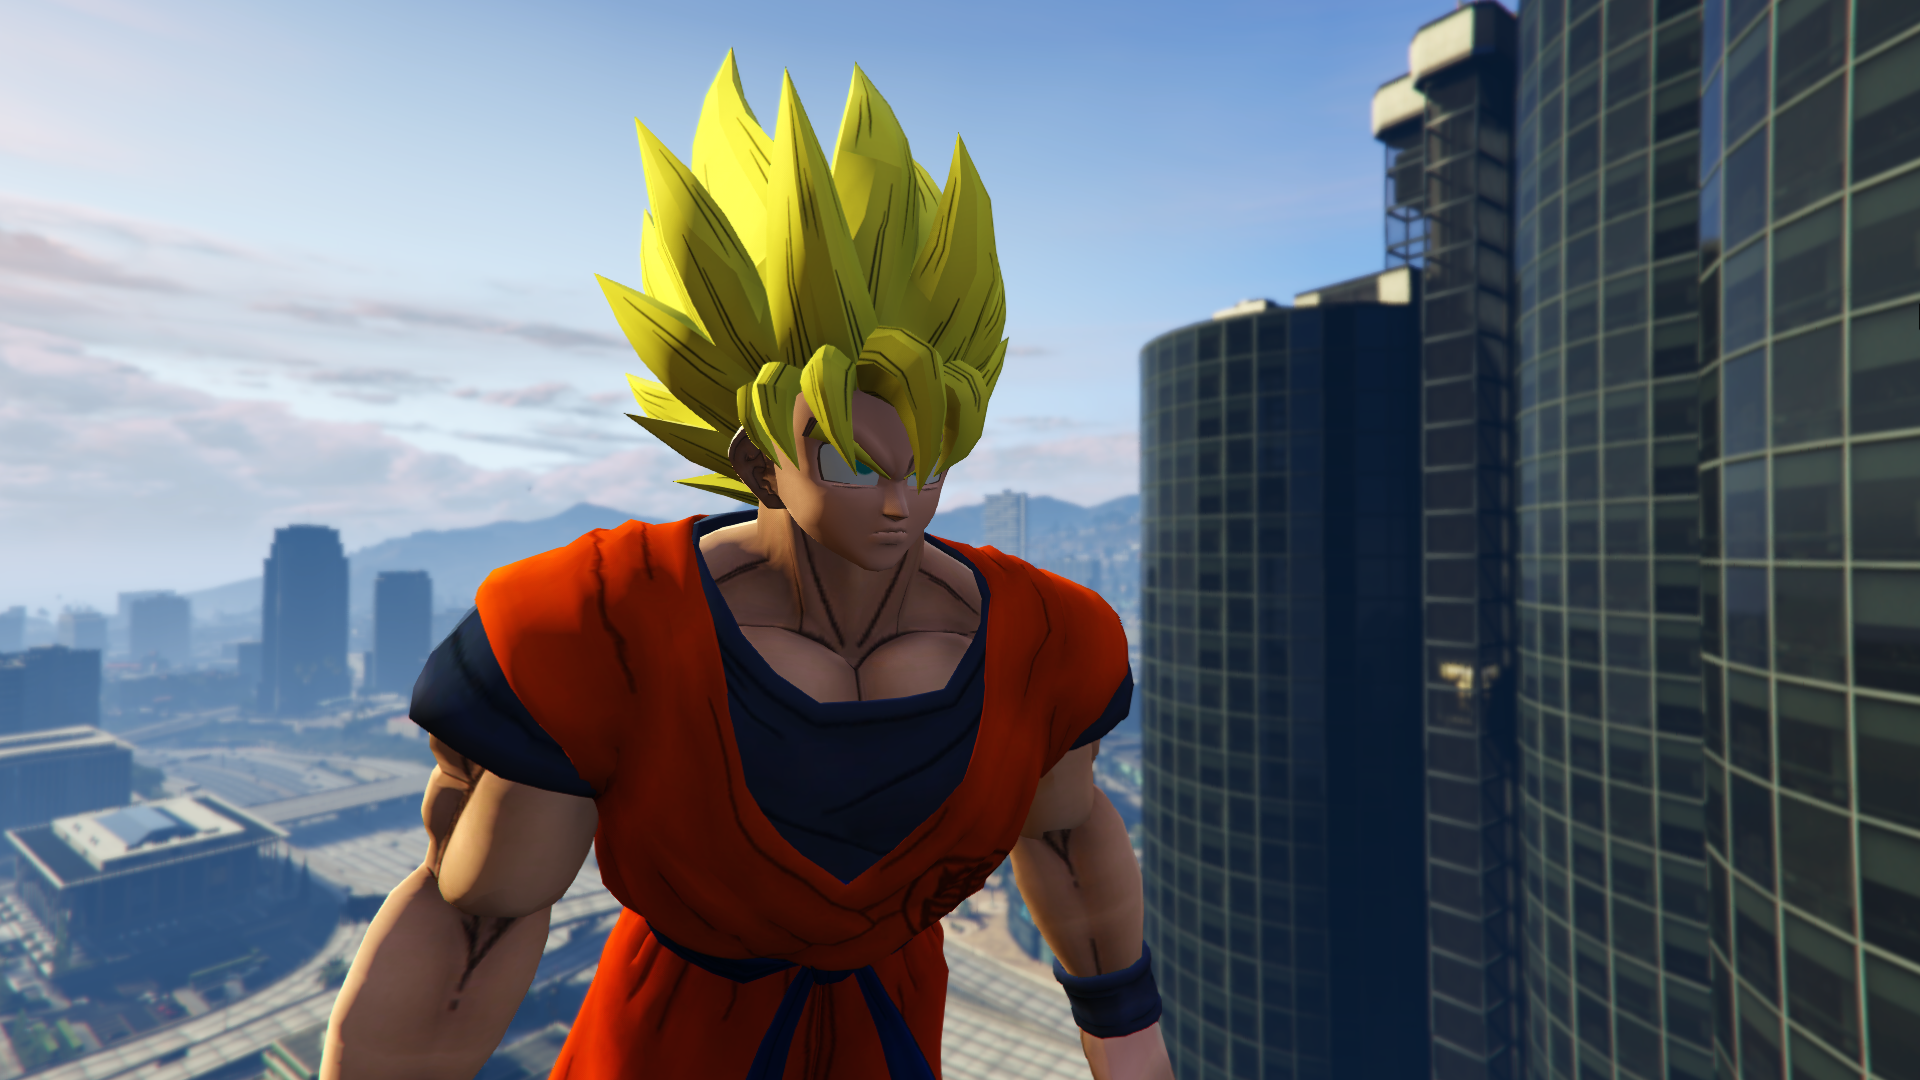 Dragon Ball Z Goku Gta5 Mods Com